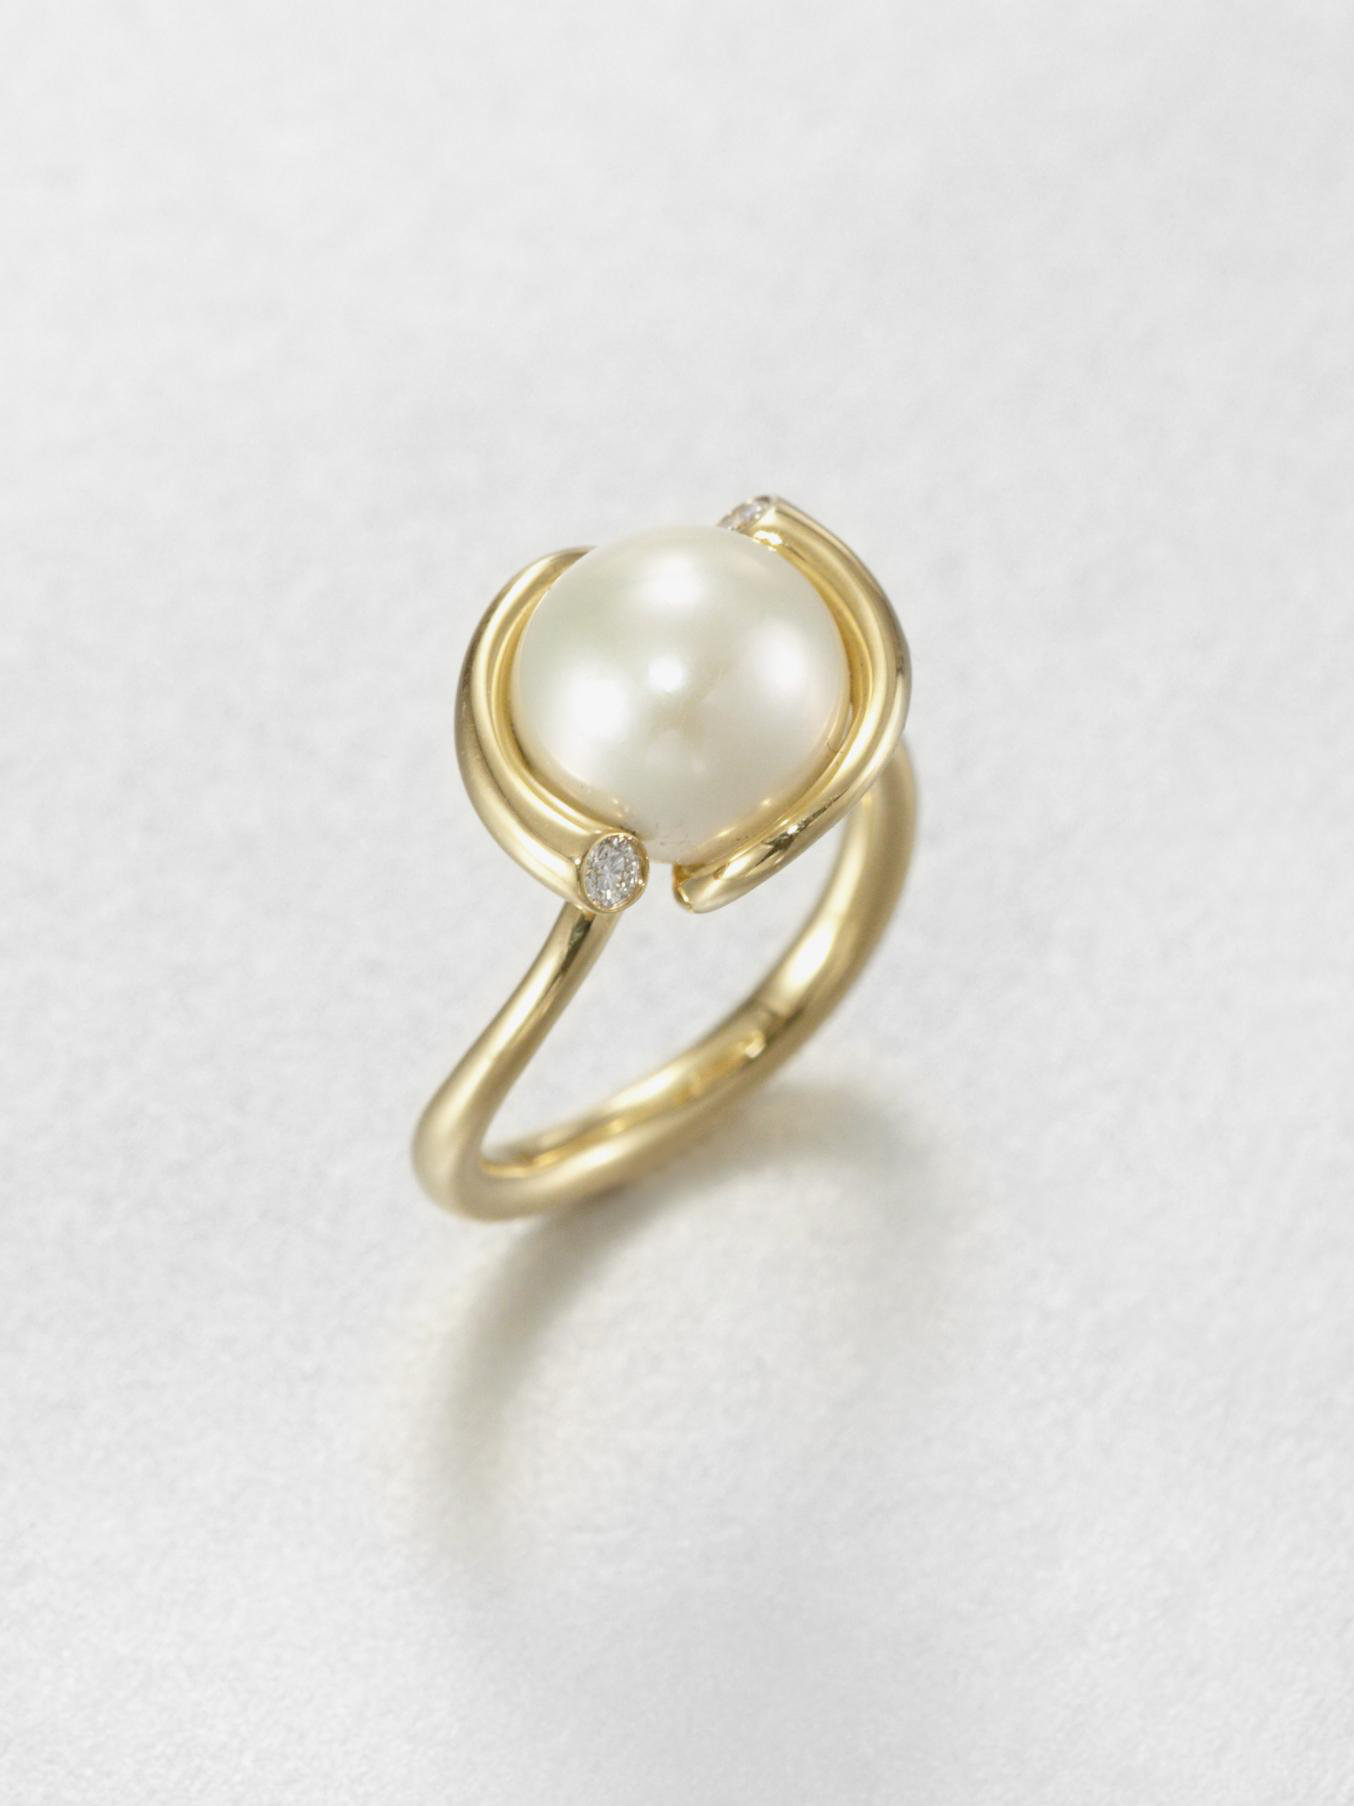 rings collections hestia freshwater romance engagement custom collection ring diamond jewels pearl